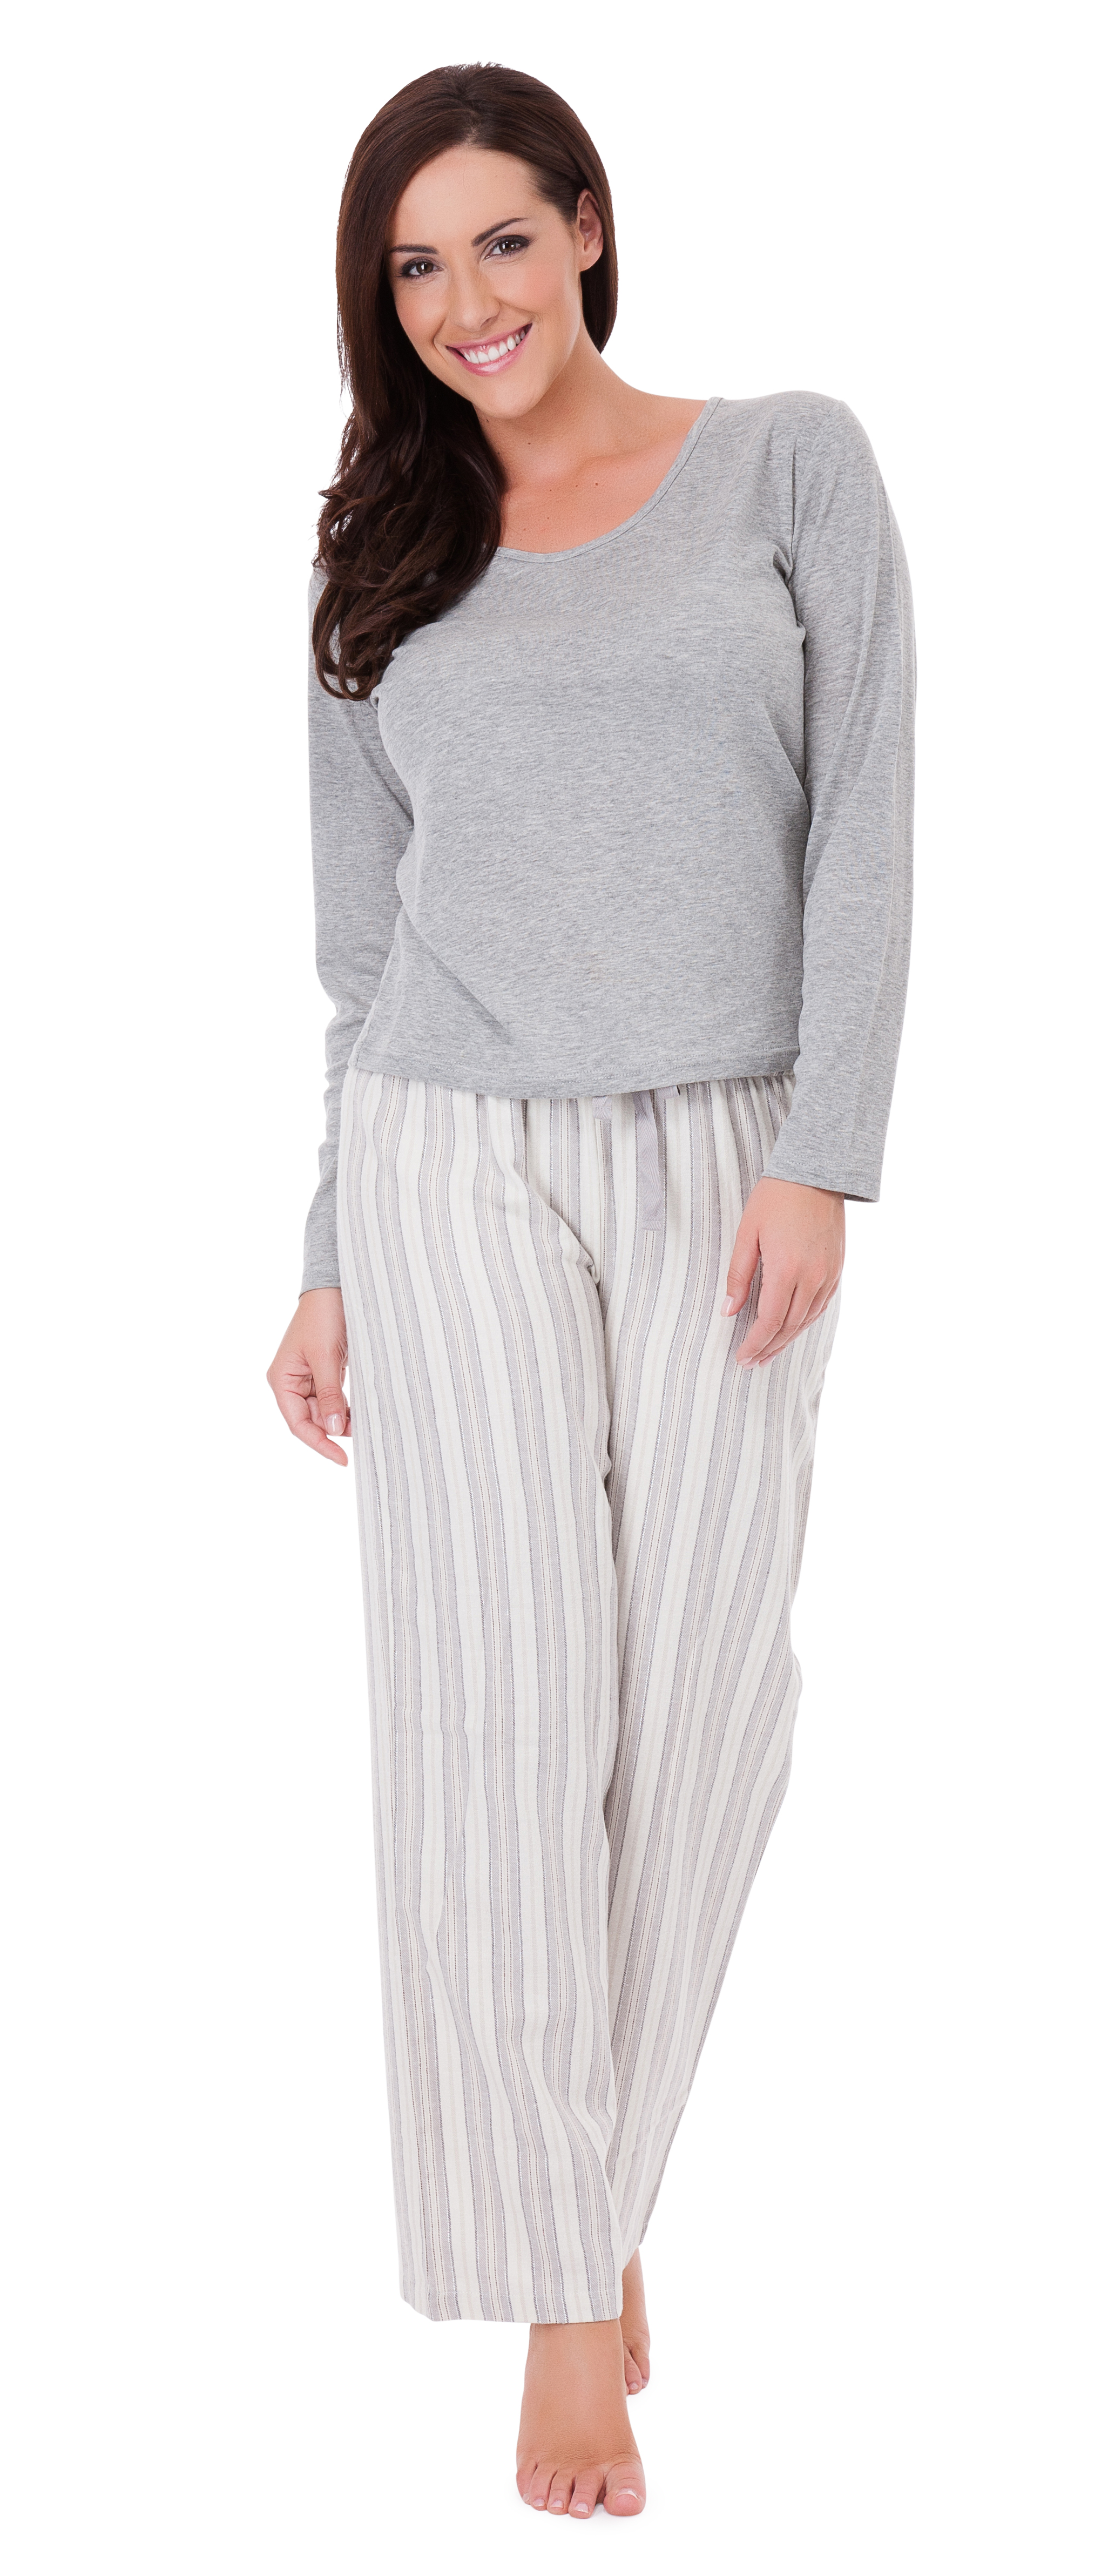 Pajamas may today refer to women's combination daywear, especially in the US where they became popular in the early twentieth century, consisting of short-sleeved .